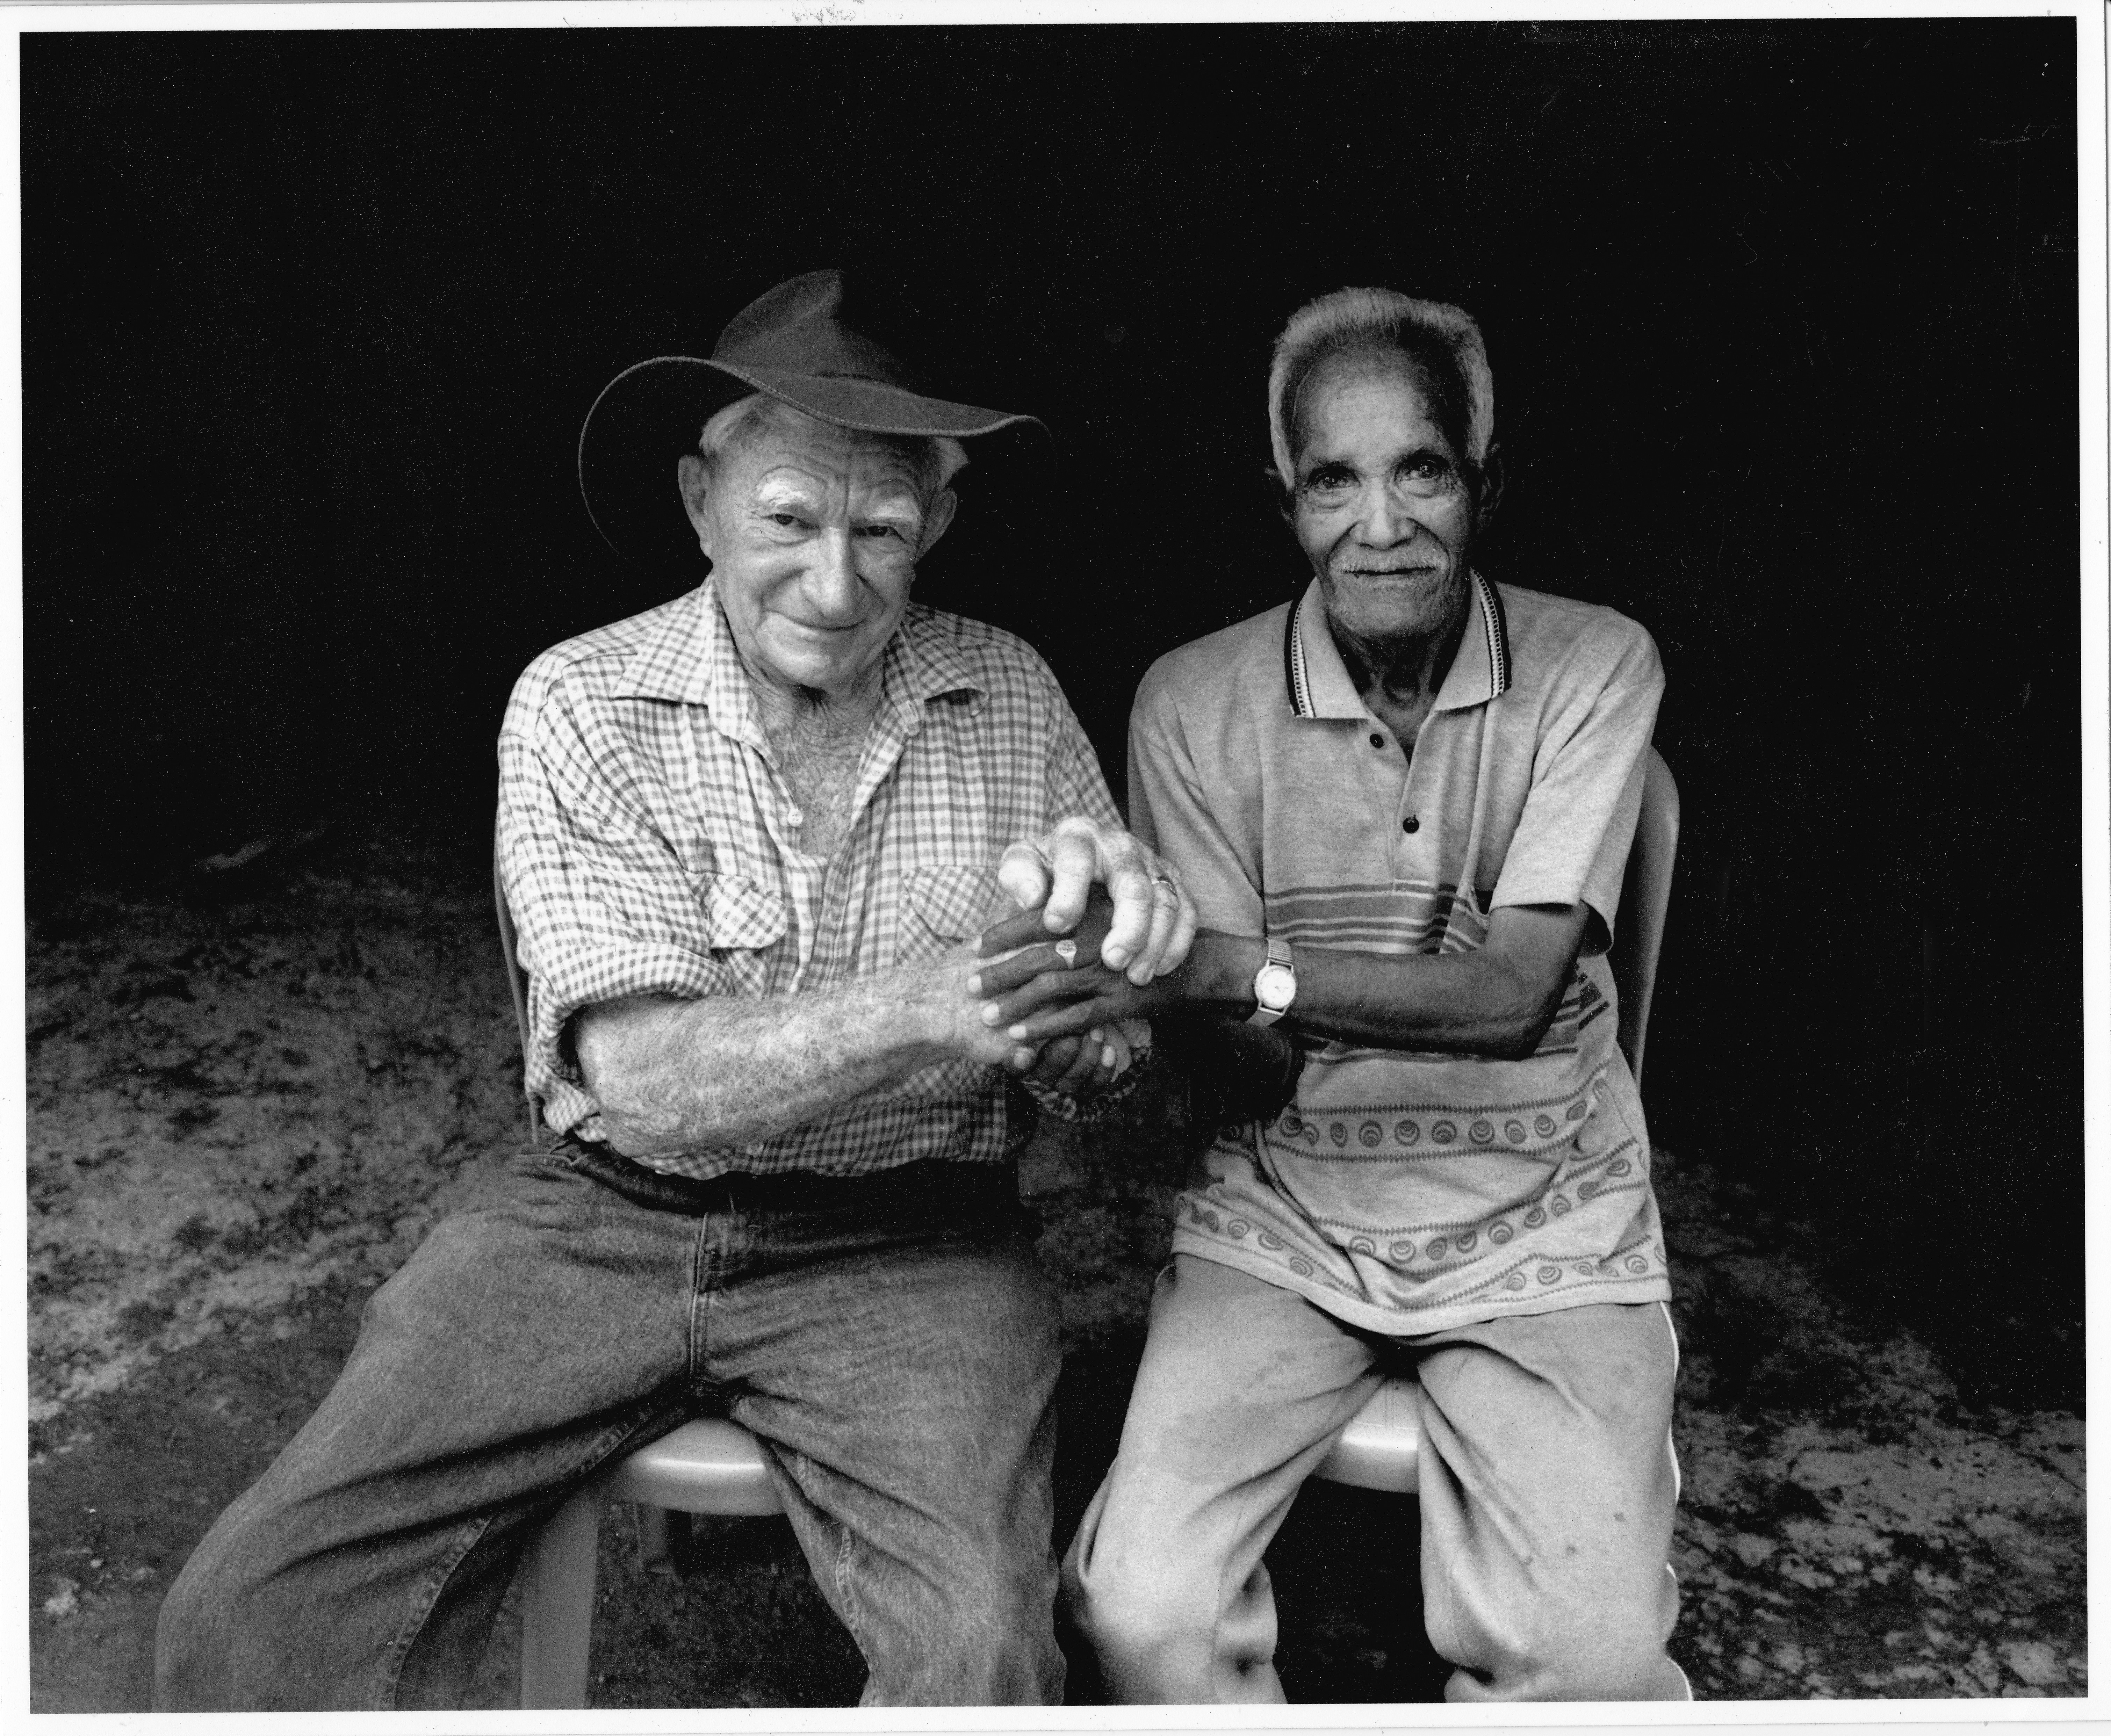 Black and white photograph of World War II veterans, Paddy Keneally and Rufinl Alves seated and holding hands.